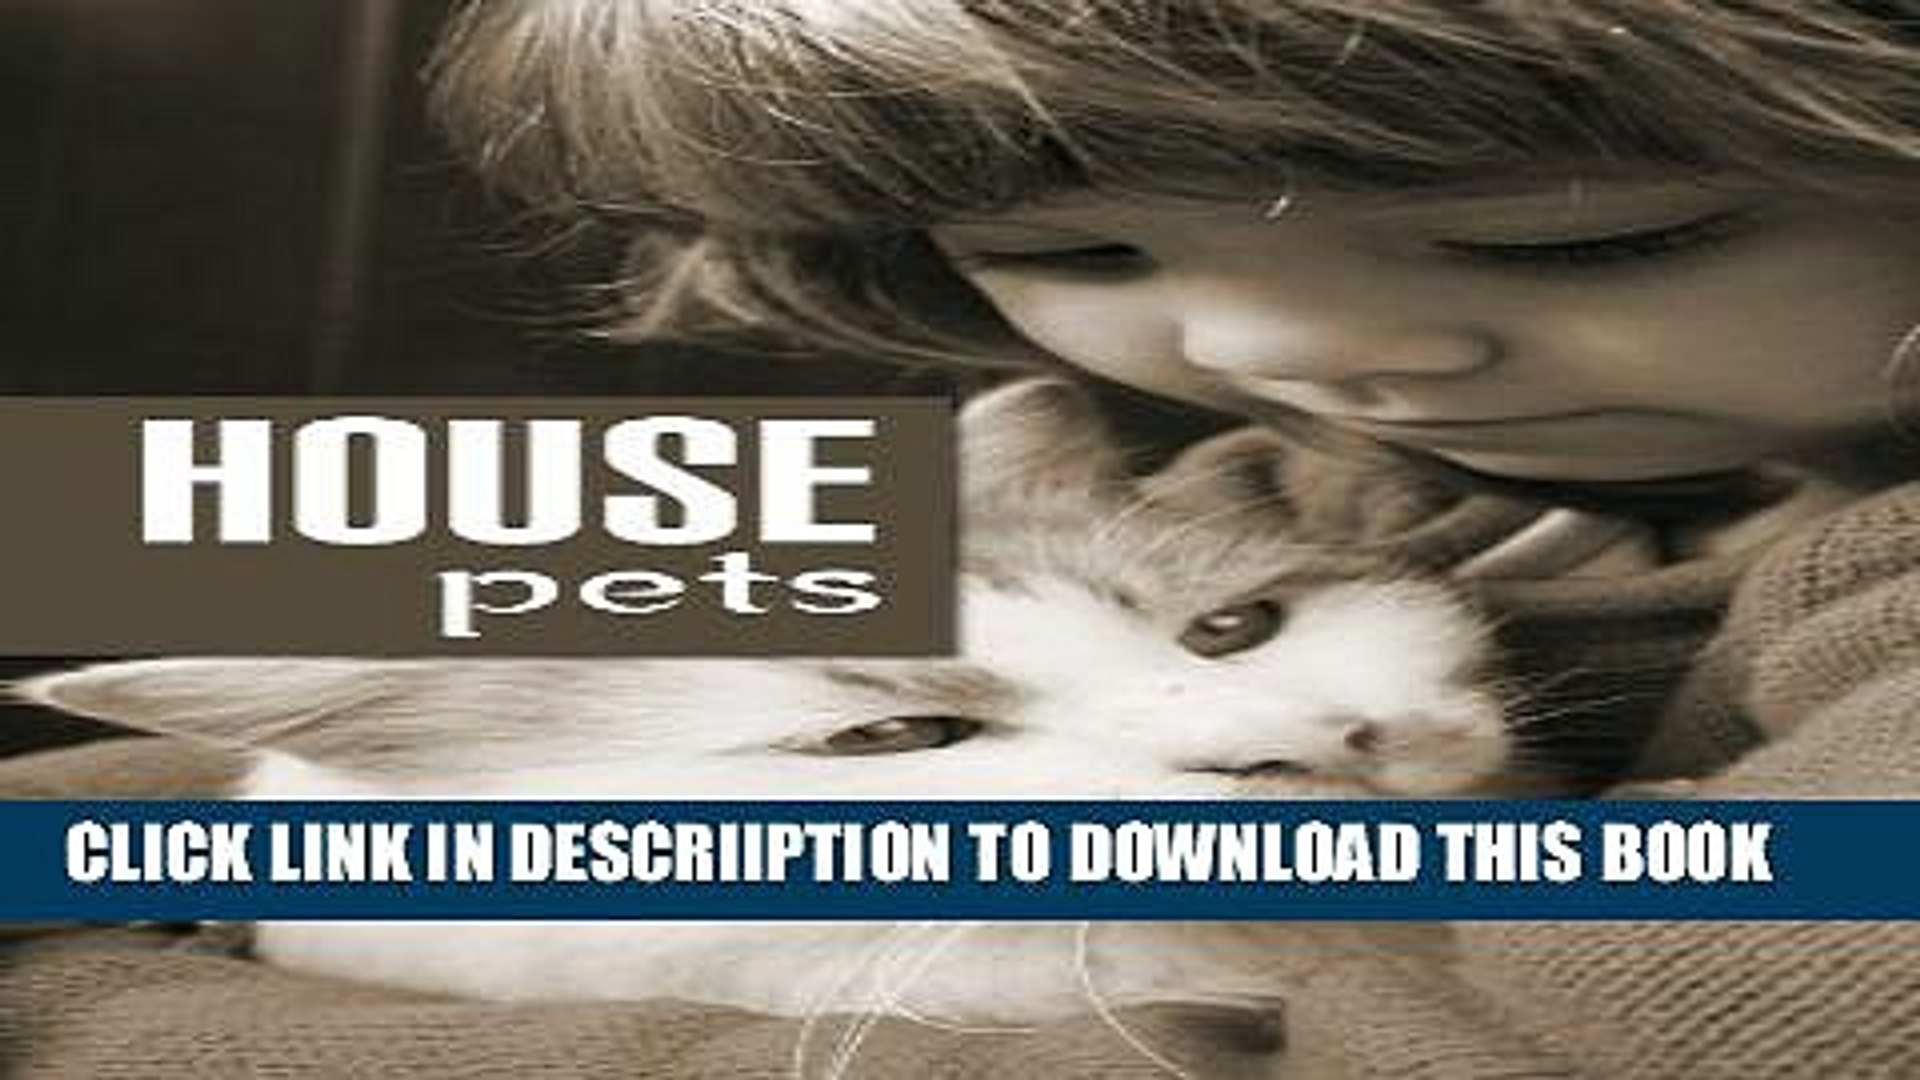 [PDF] HOUSE PETS: BENEFITS, CAUTIONS, AND HOW TO CARE FOR YOUR HOUSE PETS (All Things Pets Book 1)